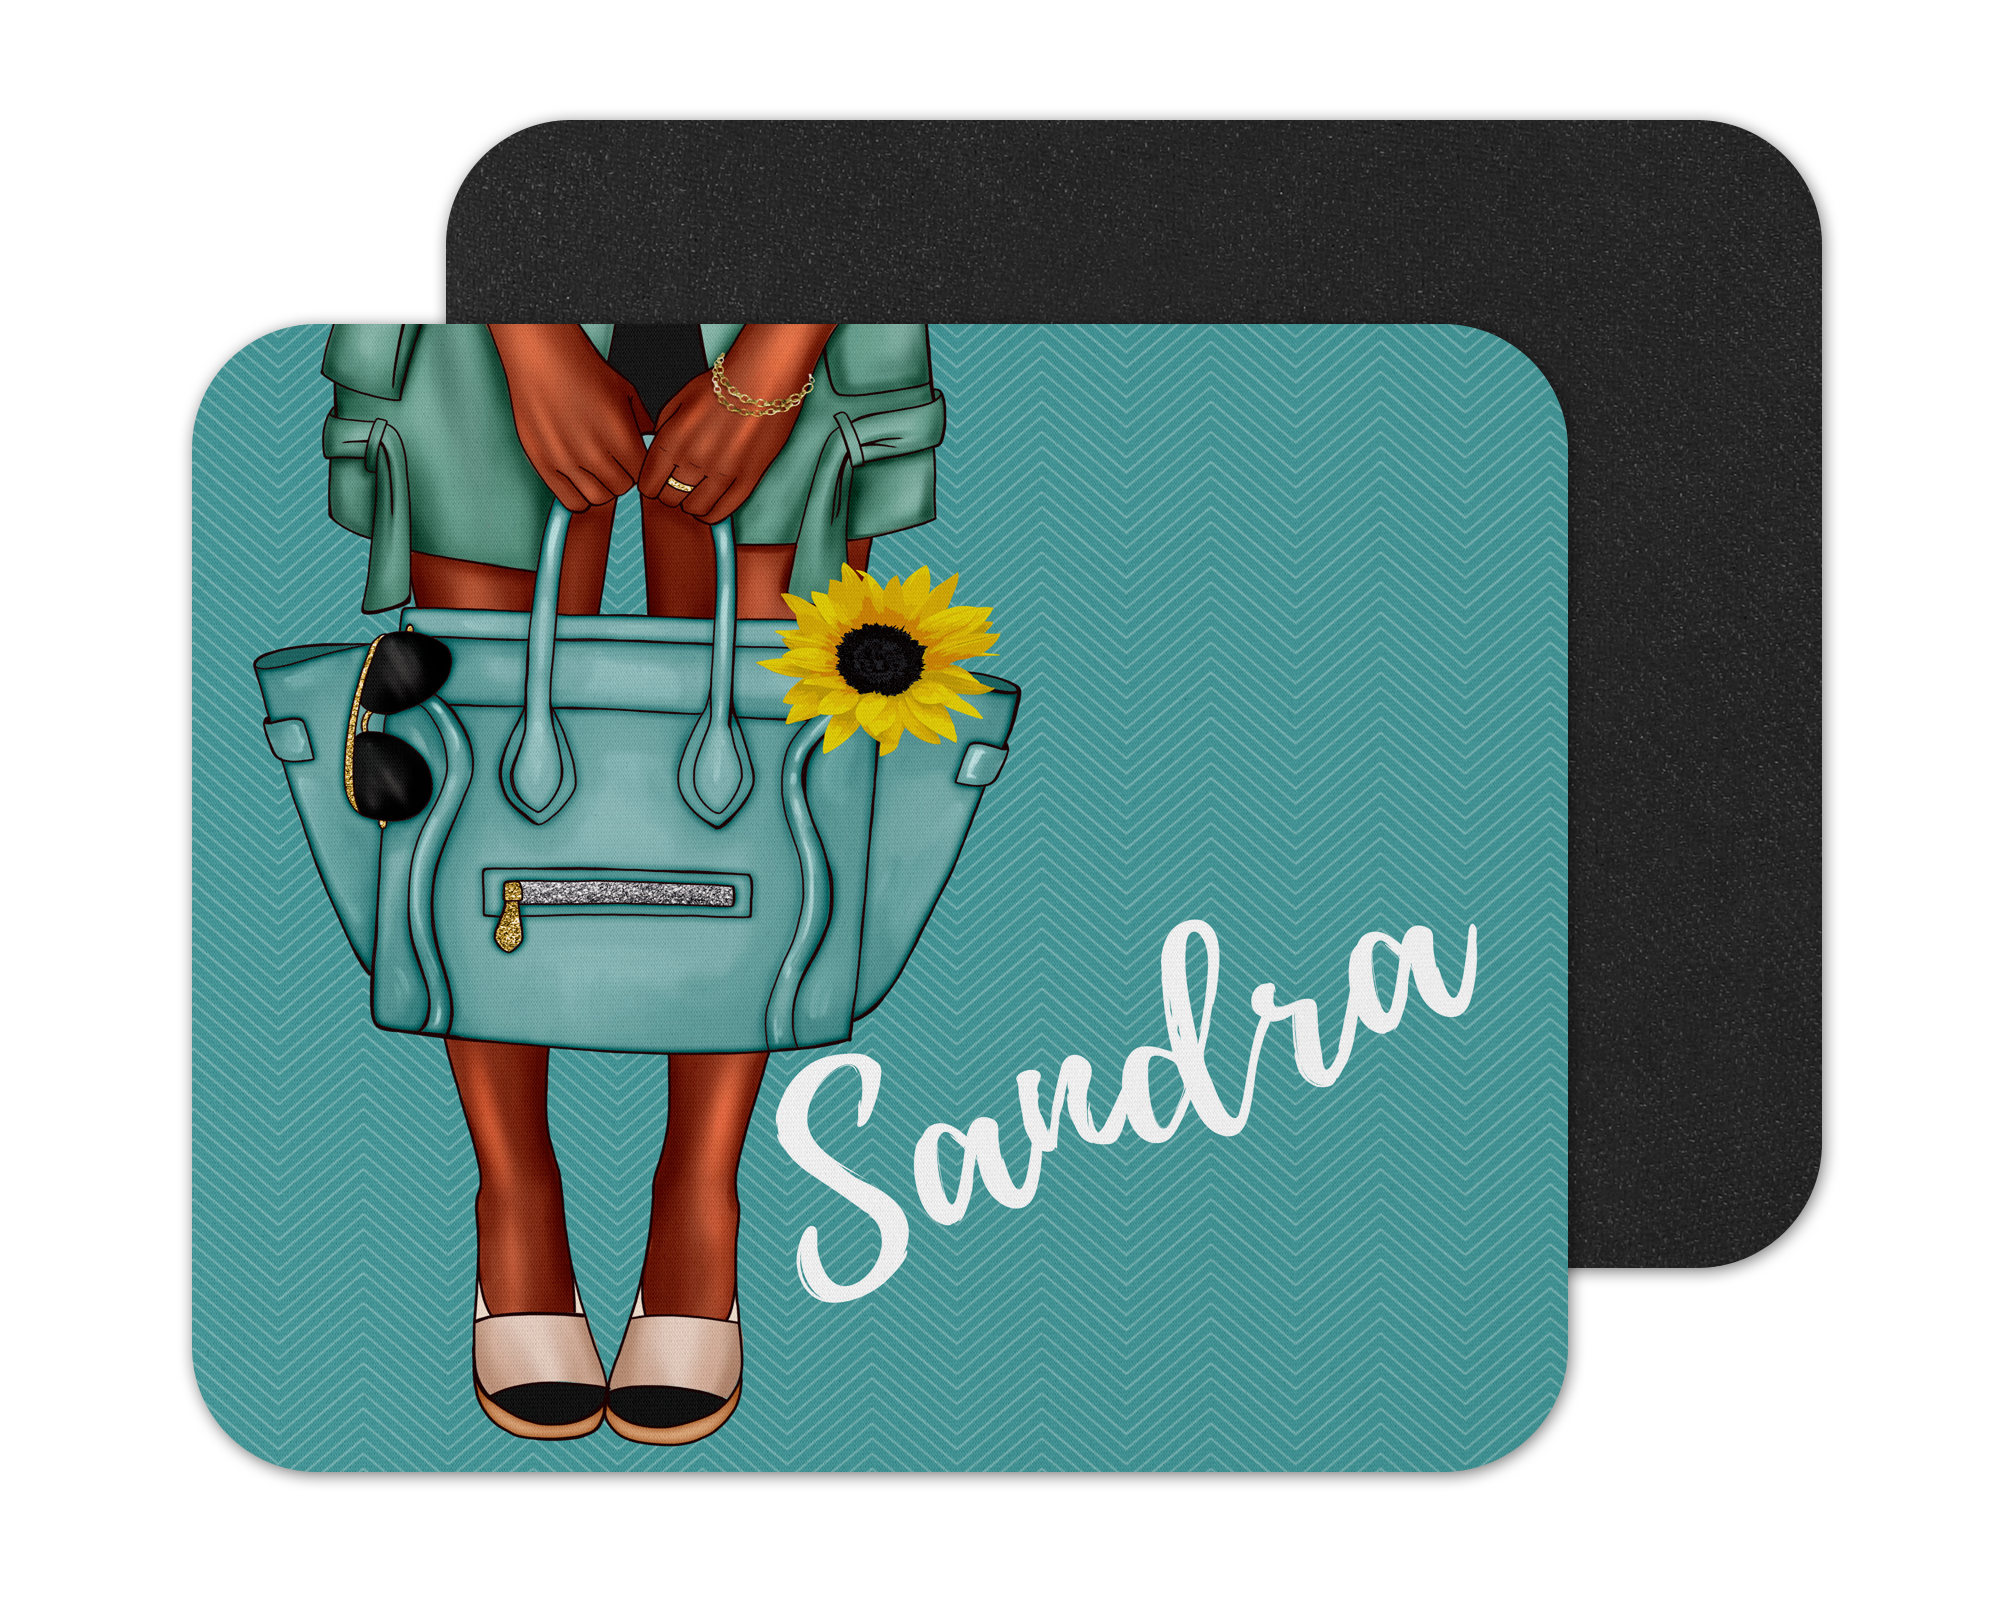 Sunflower Afrocentric Woman Mouse Pad